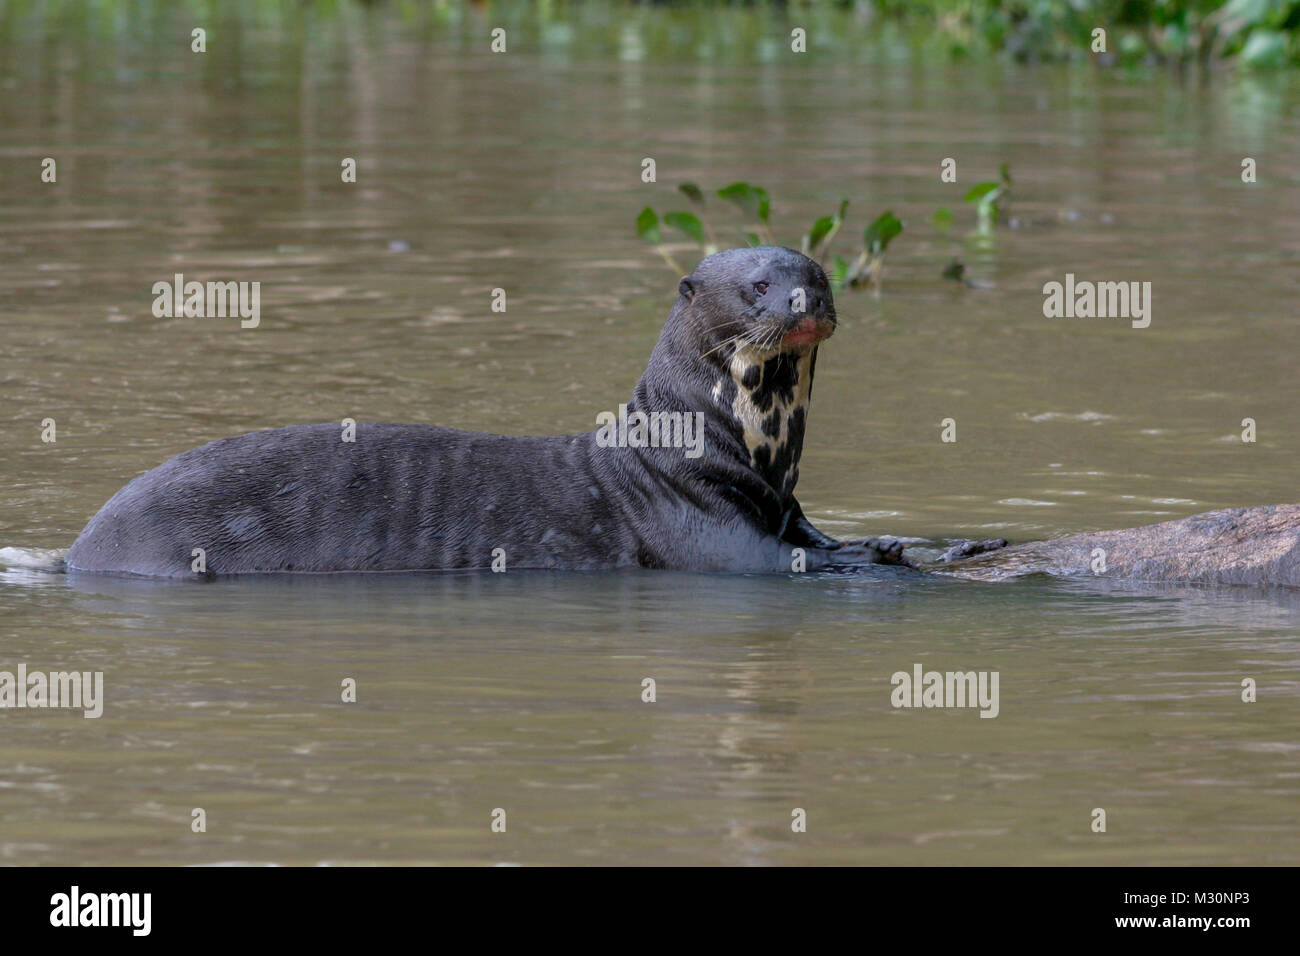 A Giant Otter resting on a tree in the Pantanal, Mato Grosso Do Sul region of Brazil - Stock Image